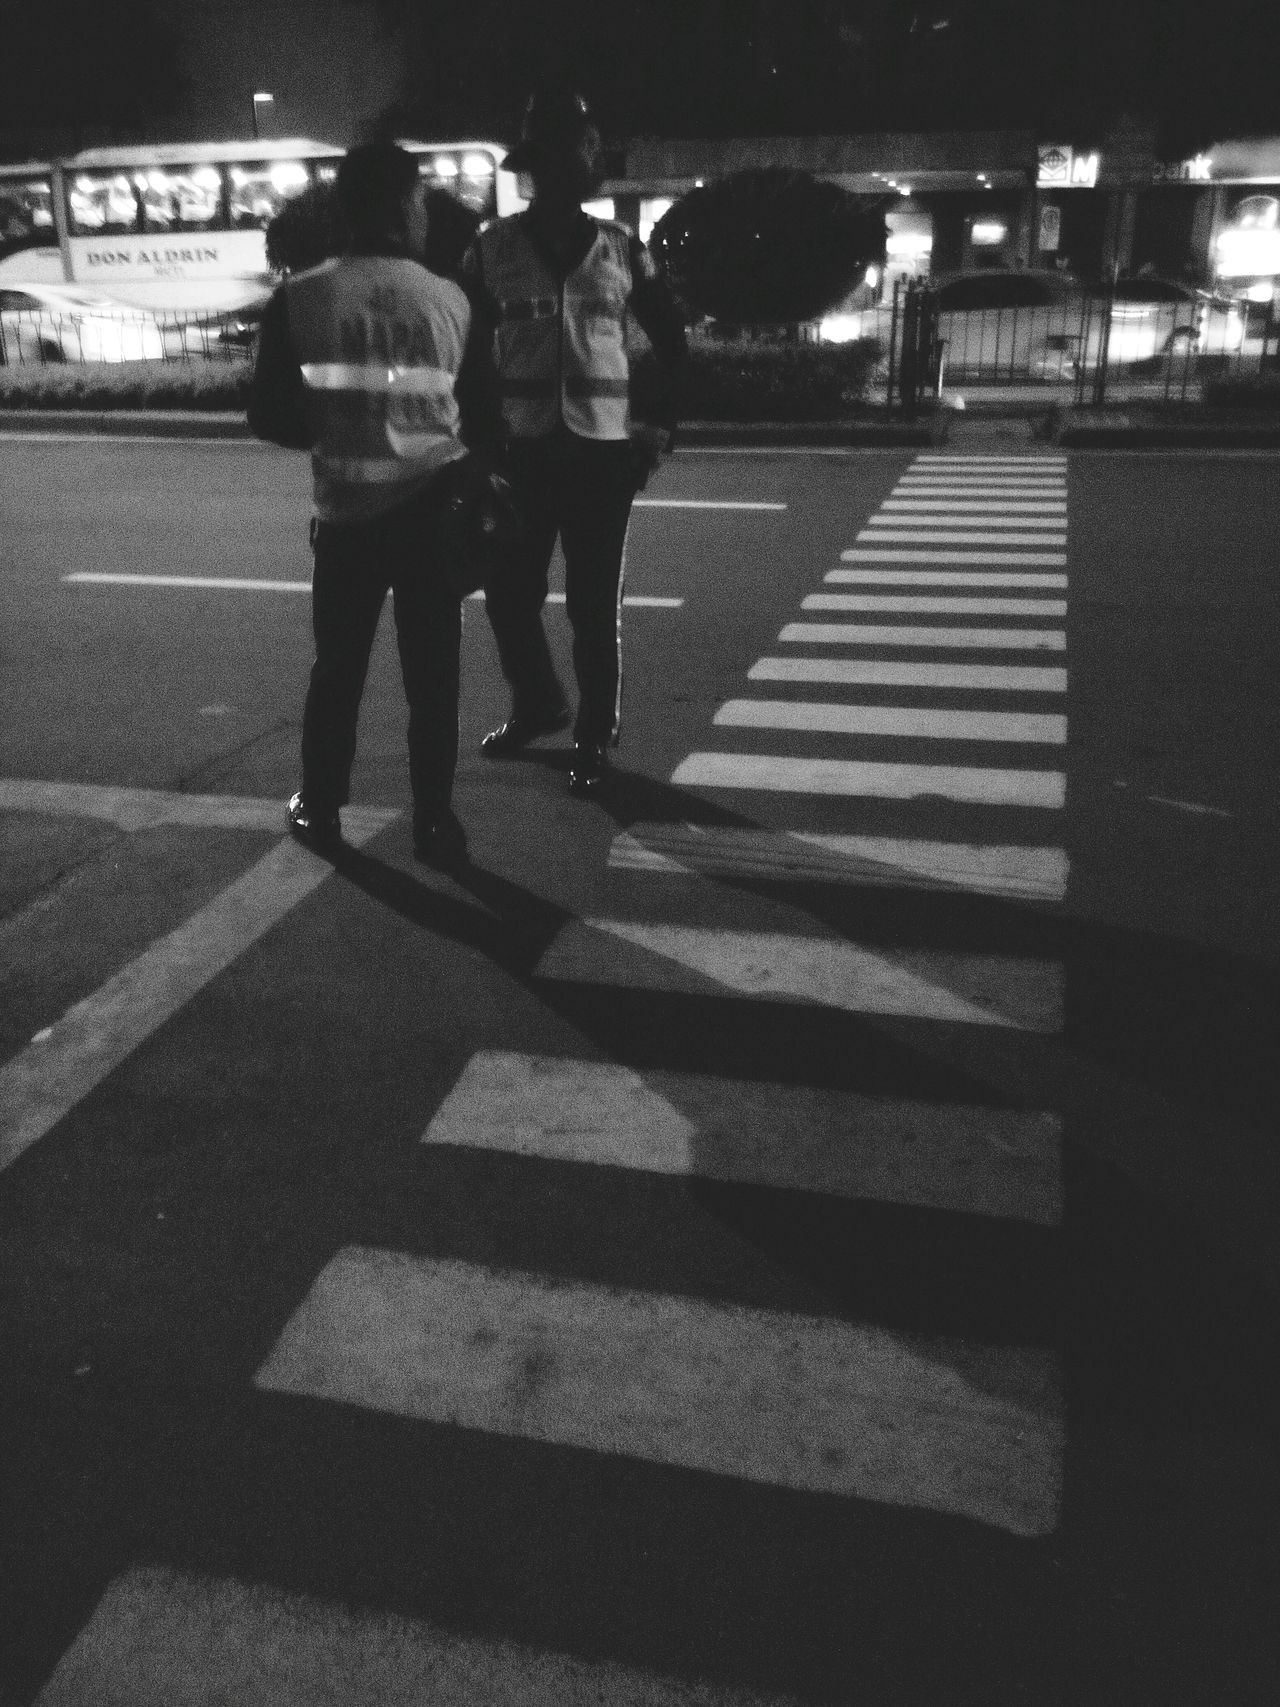 Mapsa Makati Mapsa Pedxing Pedestrian Crossing Black And White Night Time Traffic Enforcer